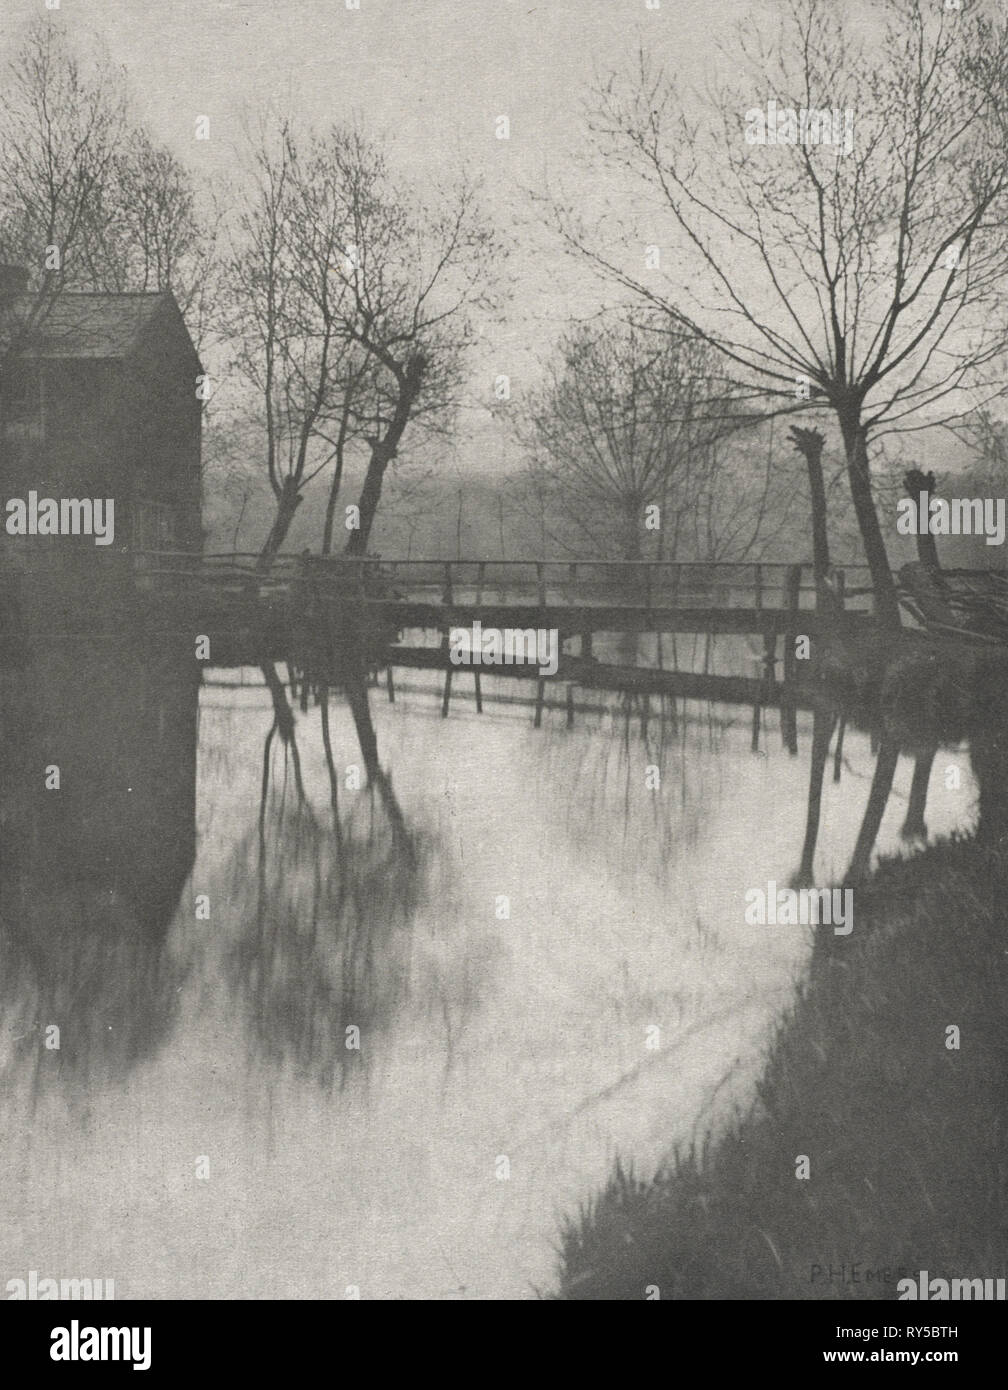 The Compleat Angler by Izaak Walton, edited by R. B. Marston, pl. XXV: Footbridge Near Chingford, from The Compleat Angler, 1888. Peter Henry Emerson (British, 1856-1936), Sampson Low, Marston, Searle and Rivington. Photogravure; image: 18.6 x 14.4 cm (7 5/16 x 5 11/16 in.); matted: 35.6 x 30.6 cm (14 x 12 1/16 in - Stock Image